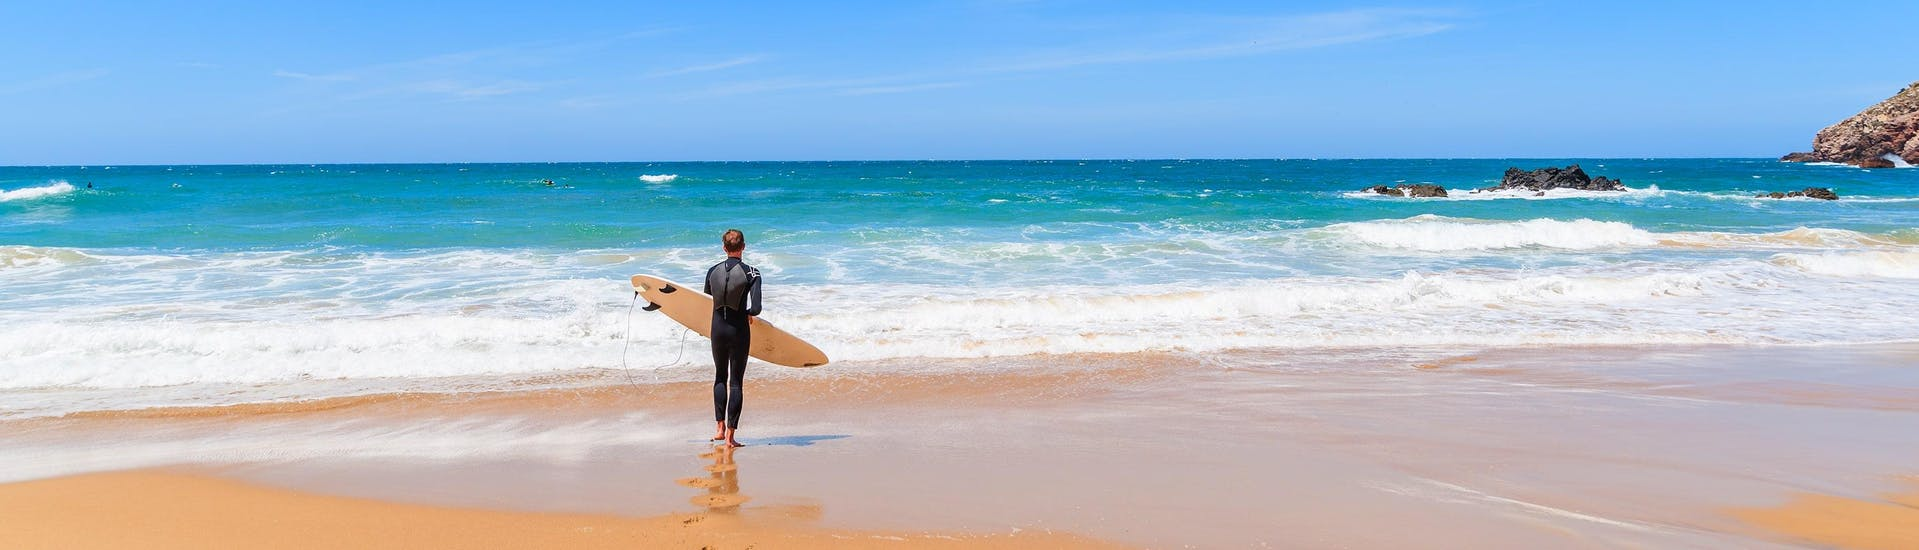 A young man dressed in a wetsuit is standing on a beach with his surfboard, looking out over the ocean as he gets ready to go surfing in Arrifana.